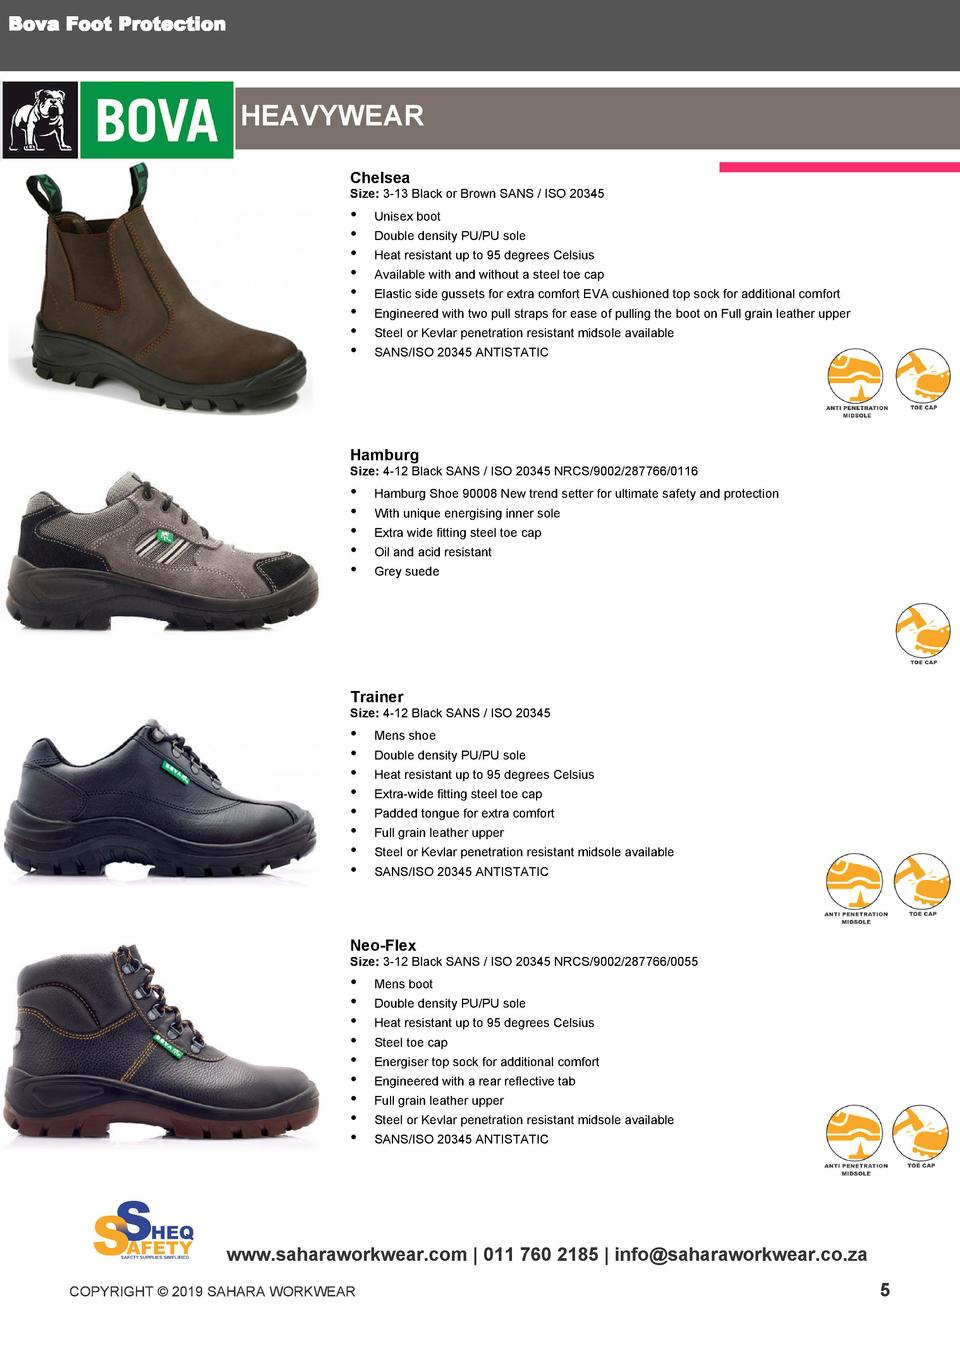 Sheq Safety Footwear :